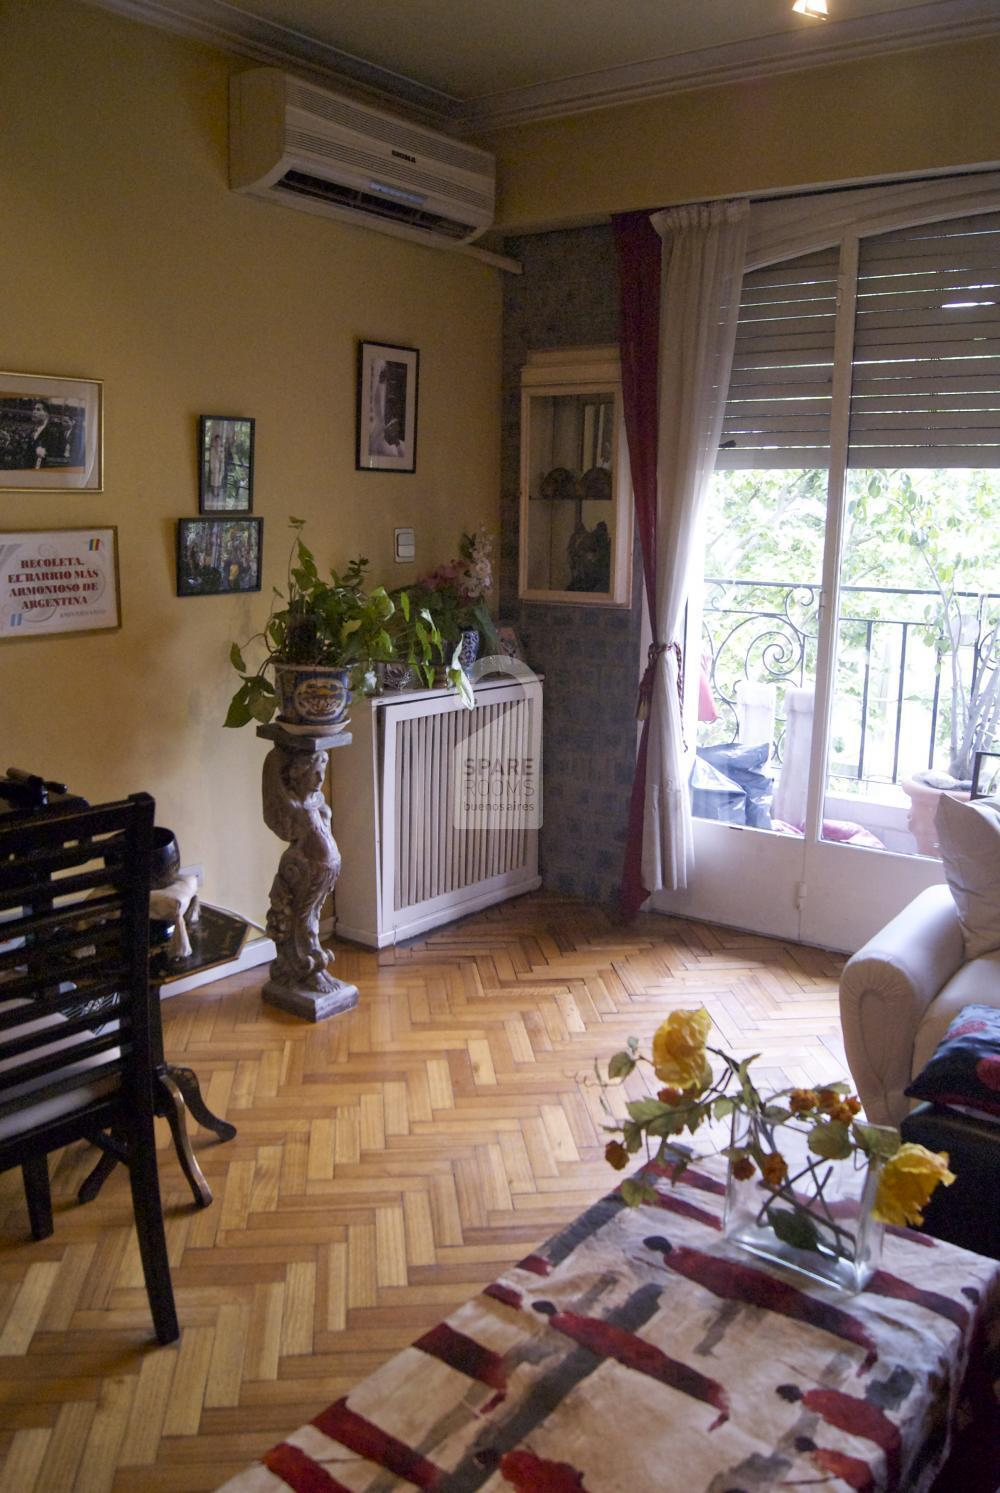 The living room at the apartment in Recoleta